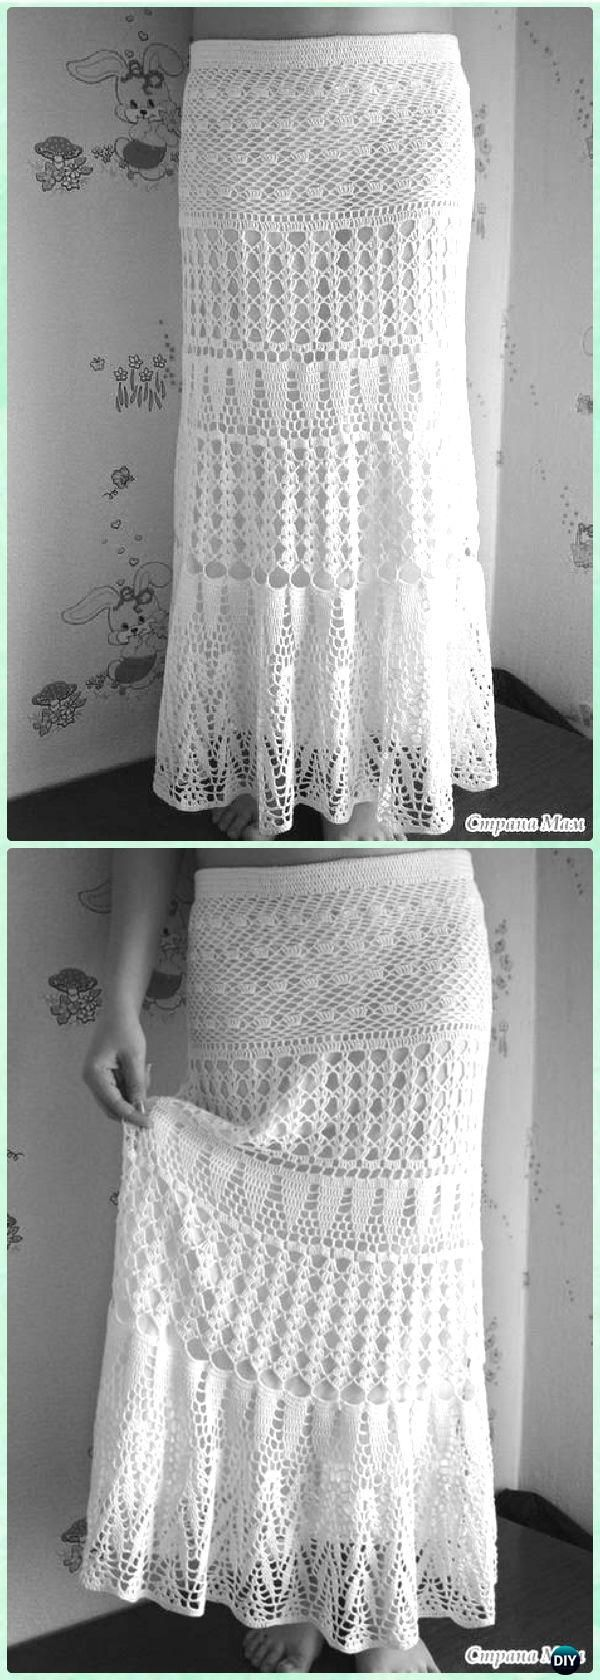 Crochet evening lace maxi skirt free diagram crochet women skirt crochet evening lace maxi skirt free diagram crochet women skirt free pattern ccuart Gallery